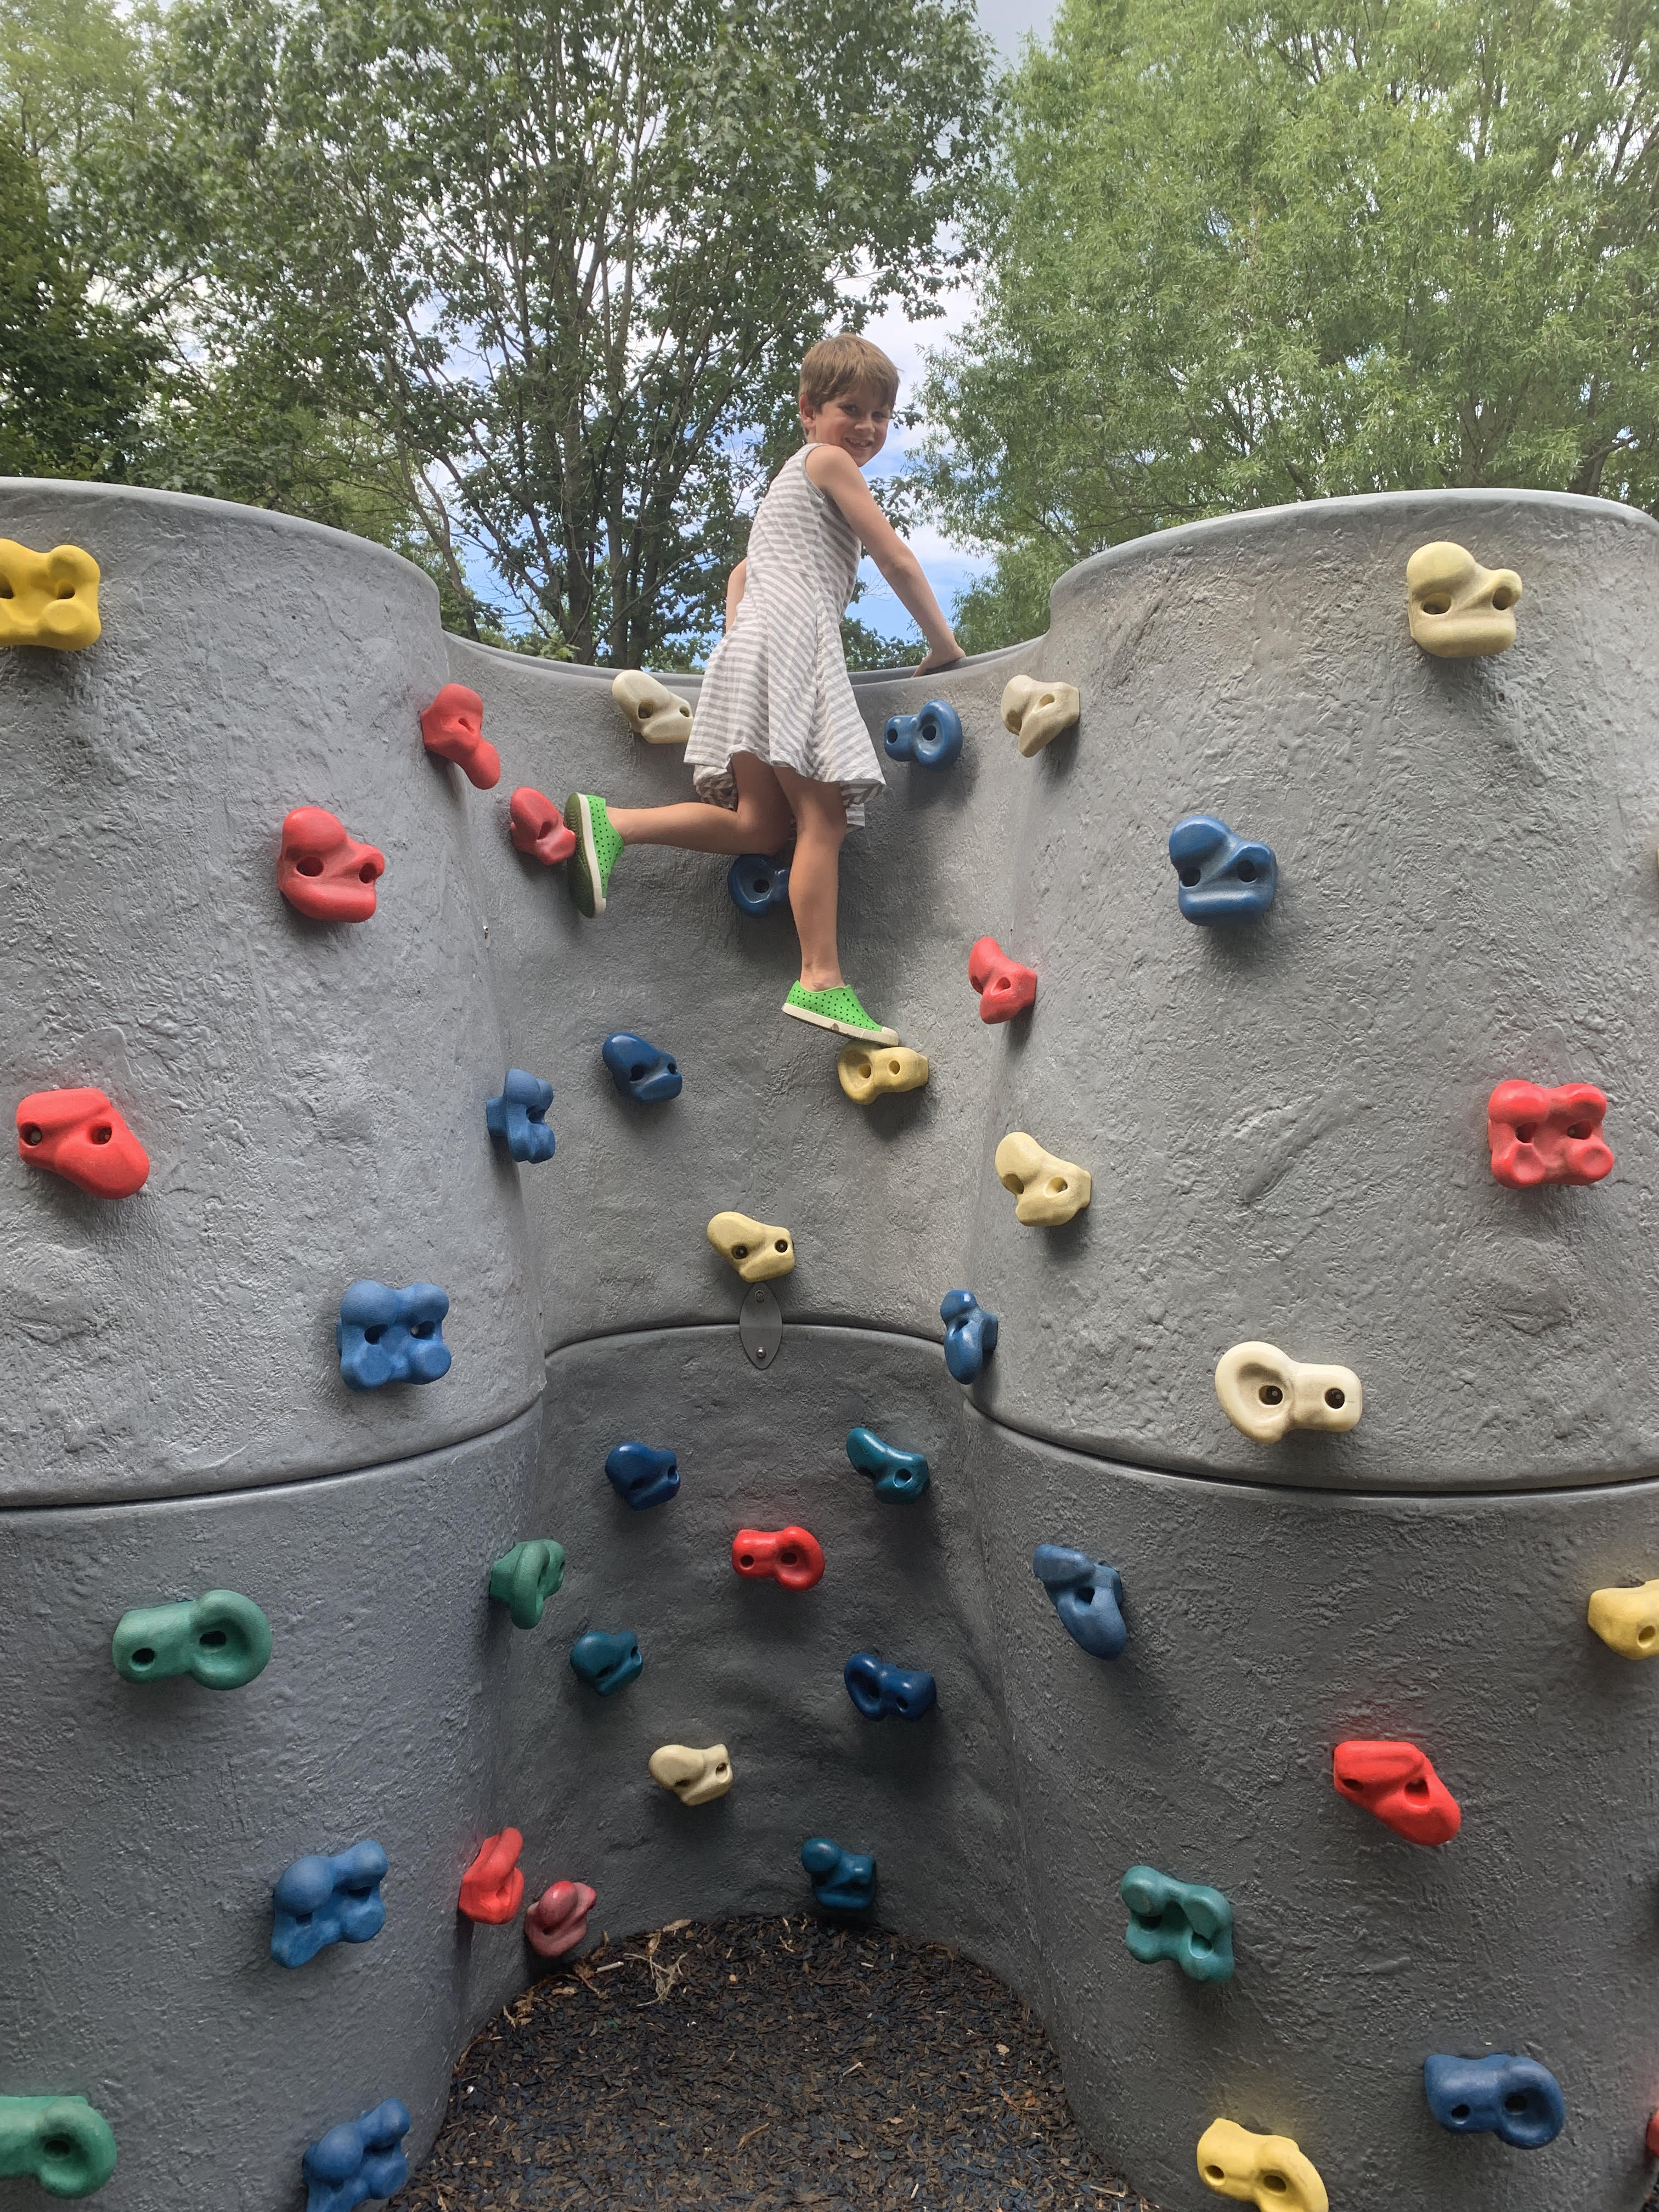 6 year old boy in a gray striped sleeveless dress from Primary rock climbing